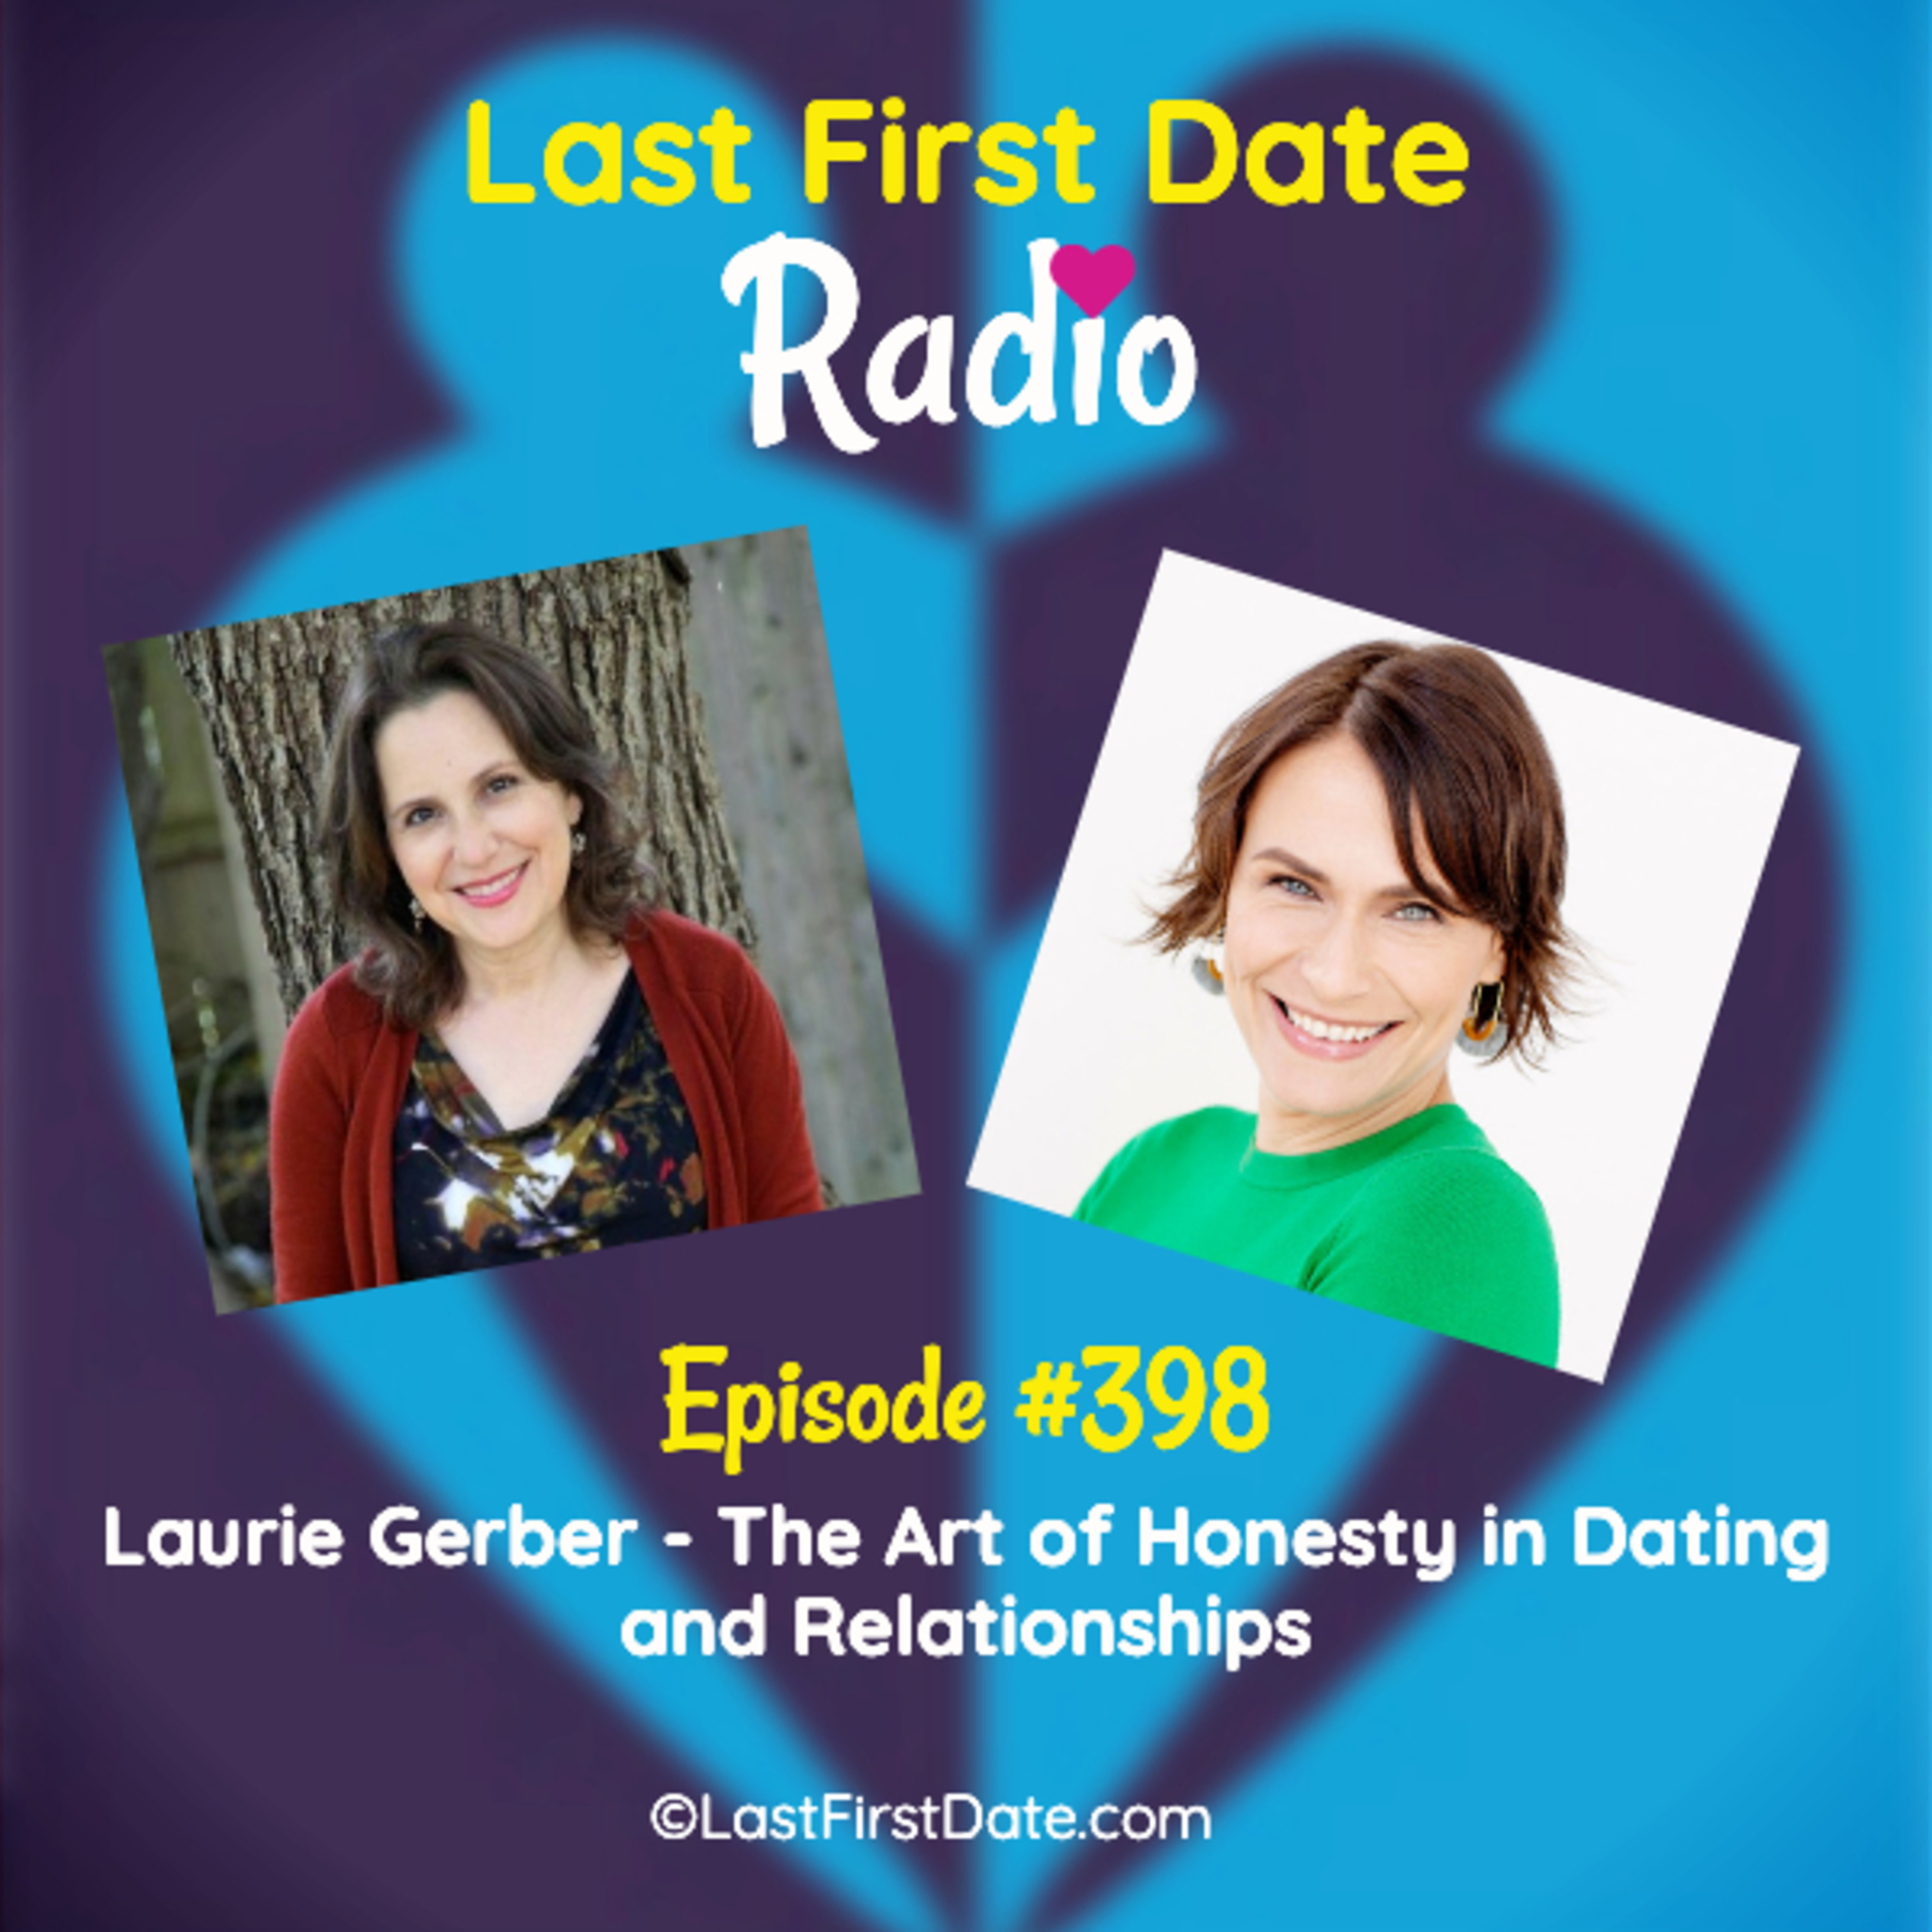 Last First Date Radio - EP 398: Laurie Gerber - The Art of Honesty in Dating and Relationships